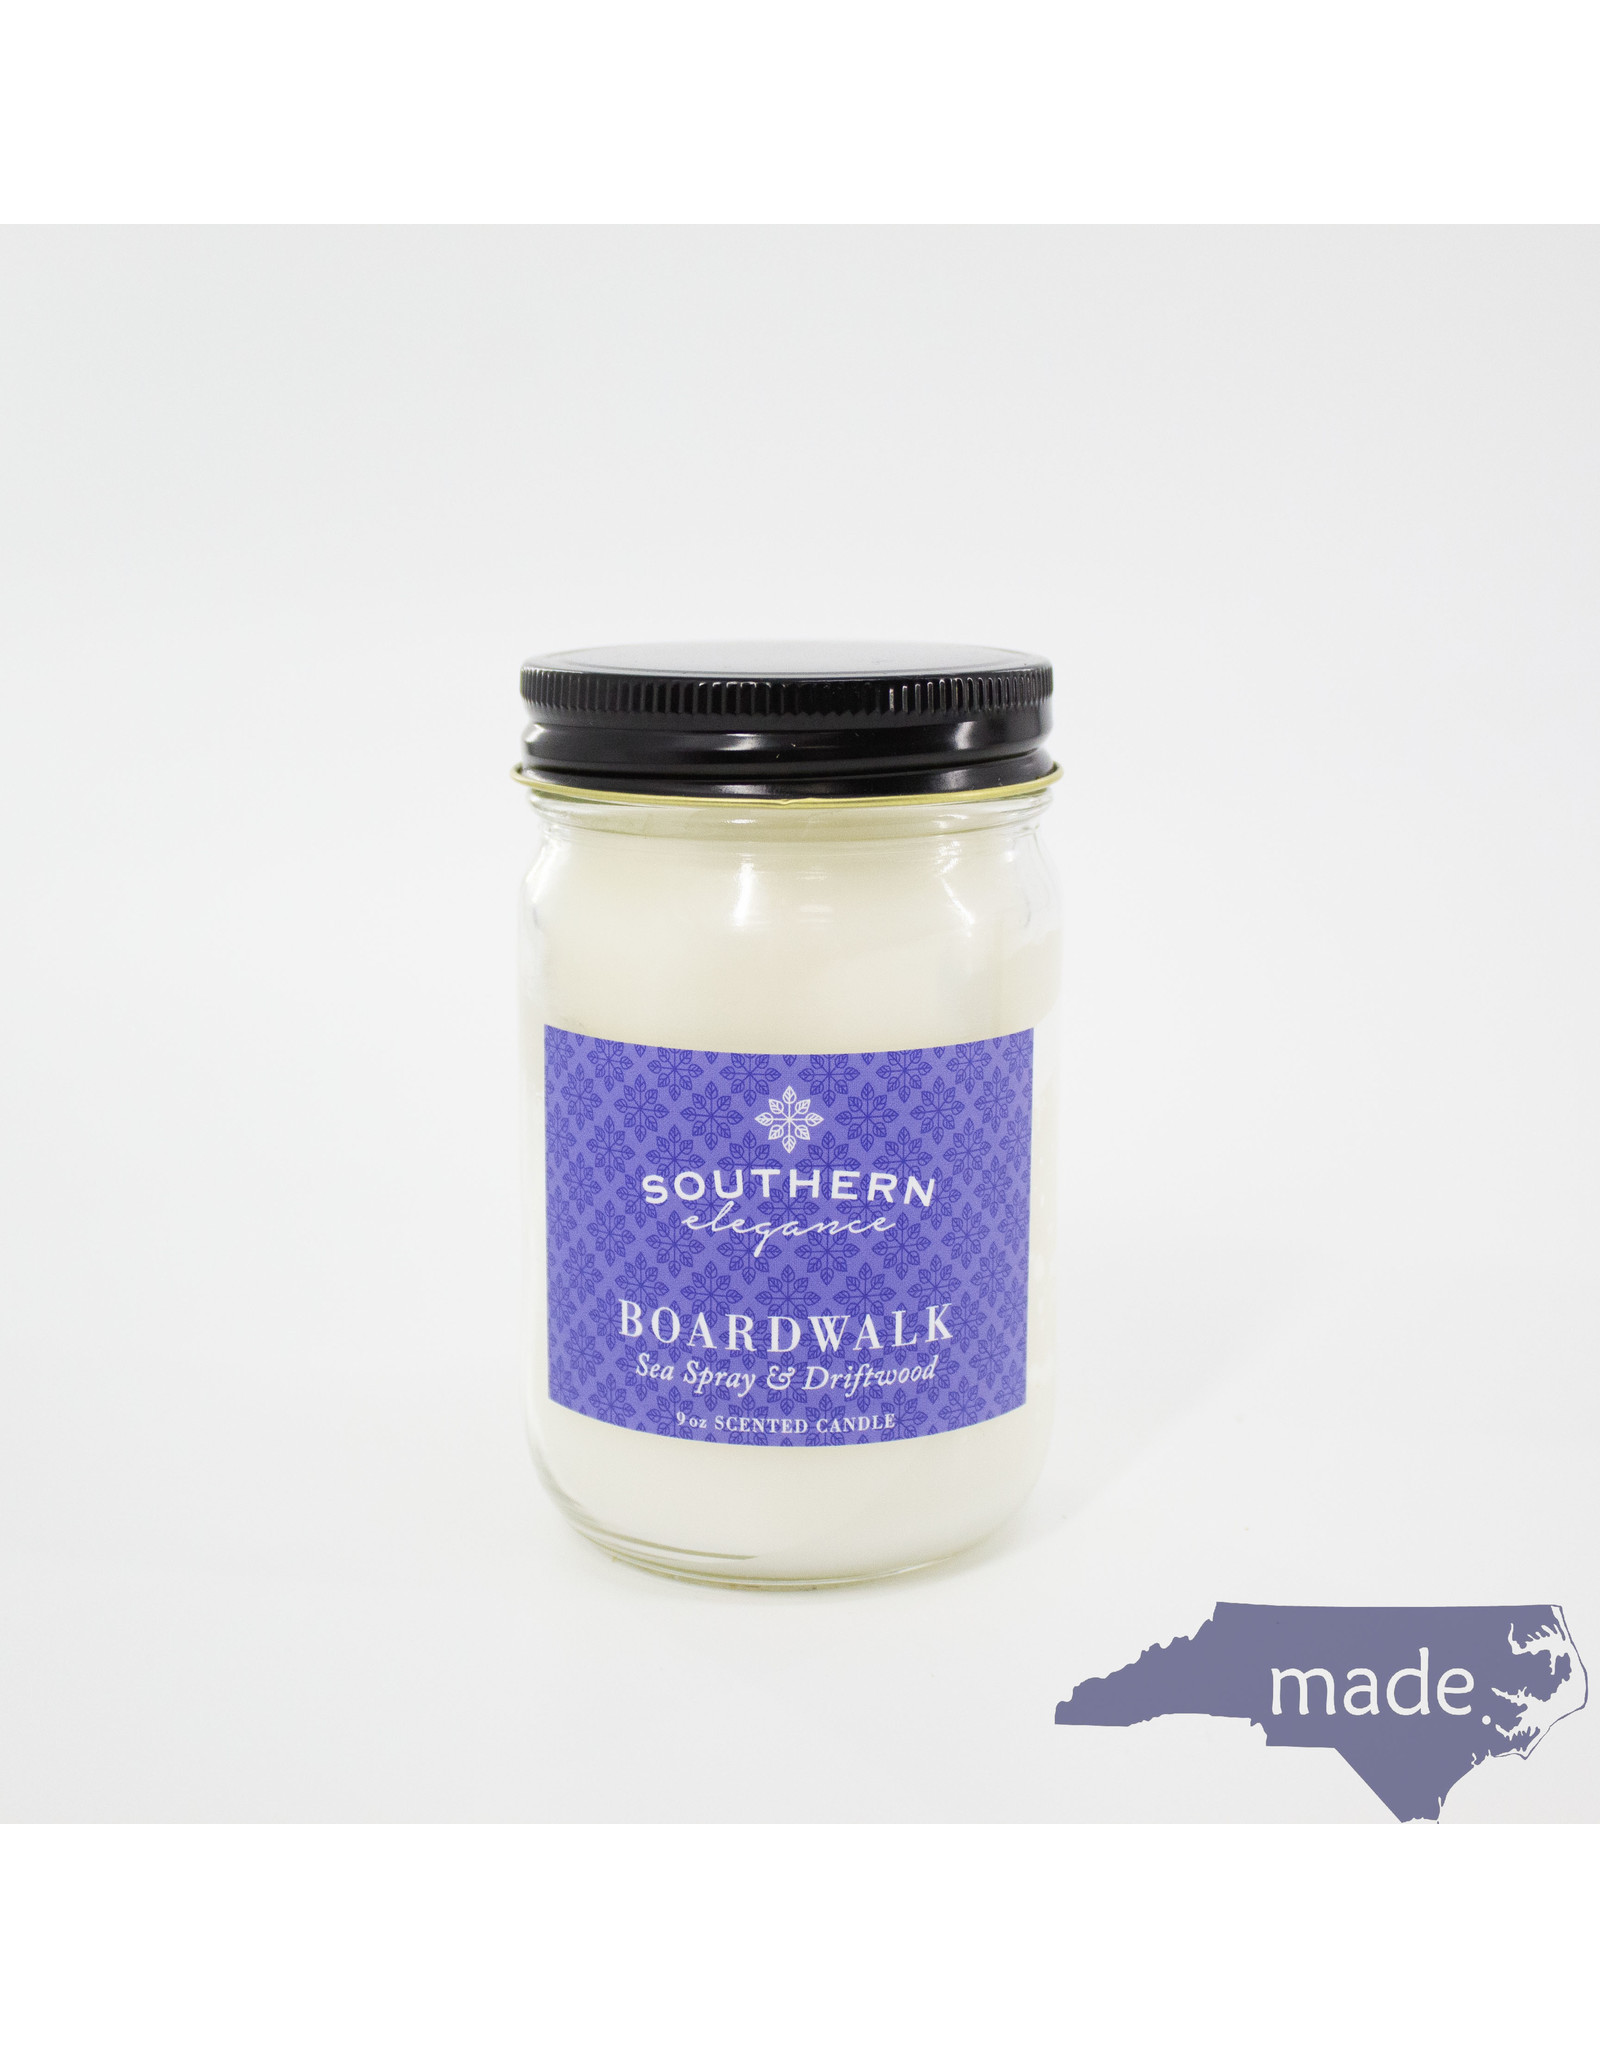 Southern Elegance Candle Co. Boardwalk - Southern Elegance Candle Co.